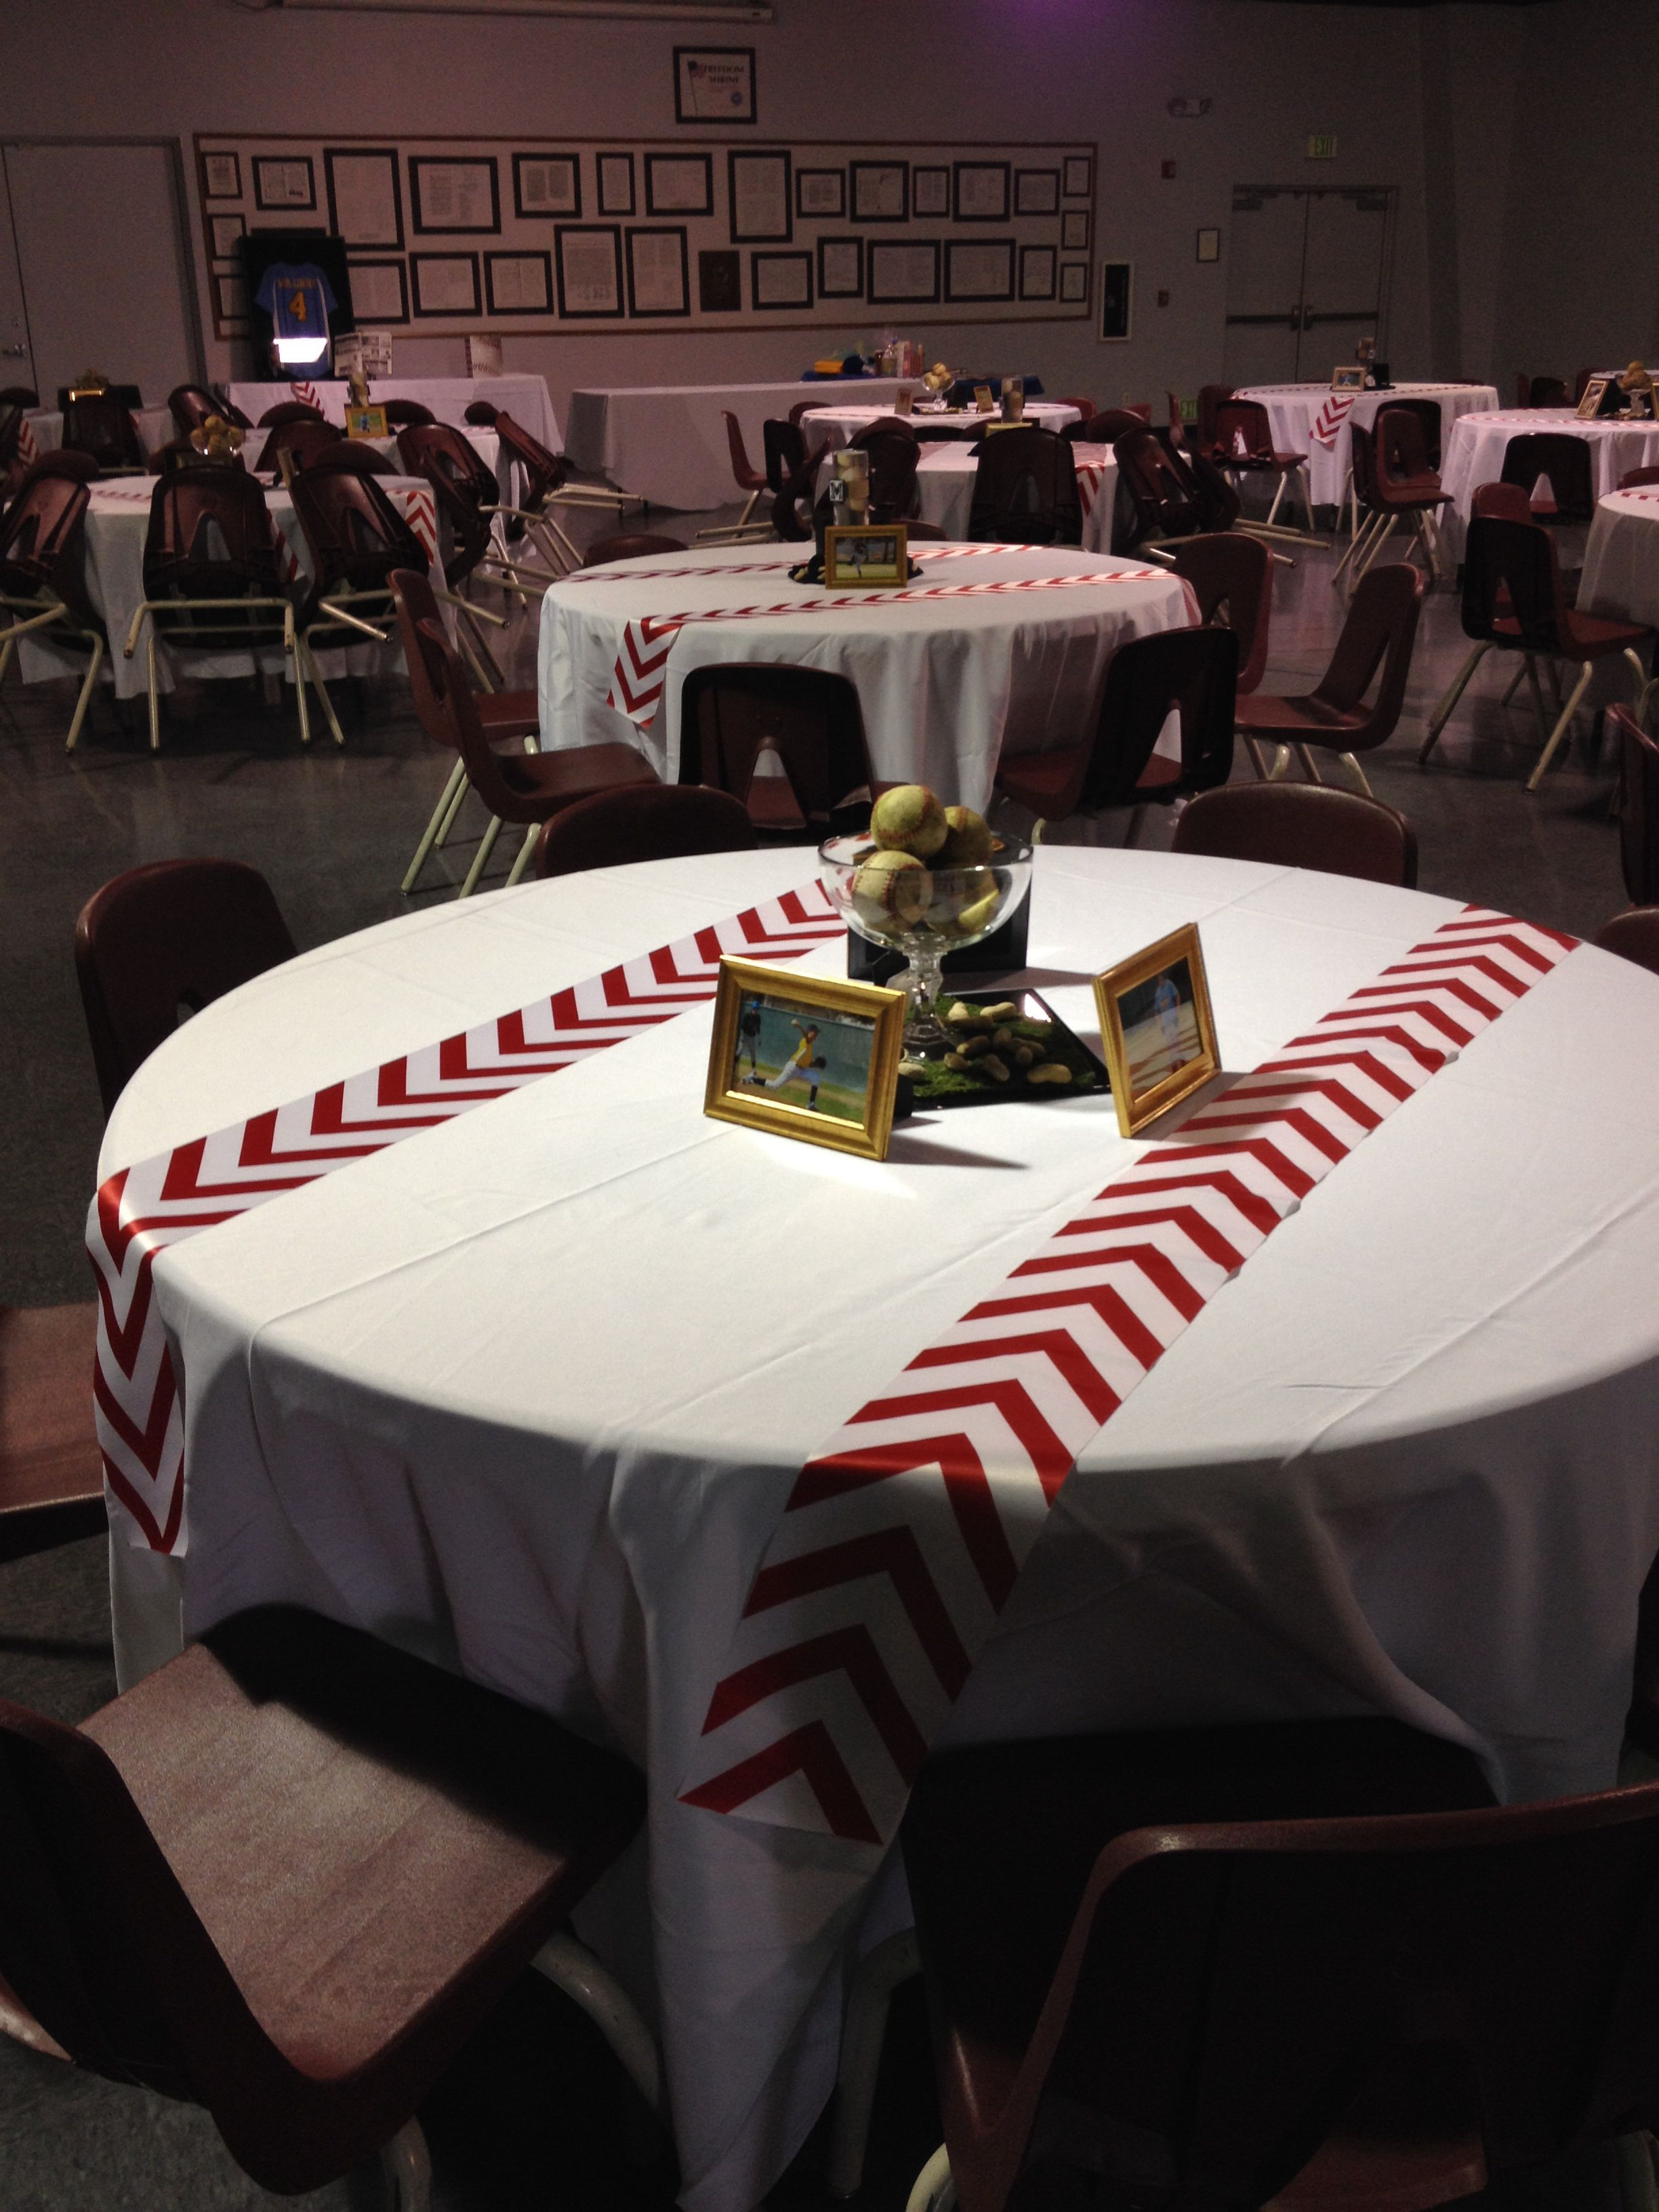 baseball event or birthday party with a baseball table and decorations